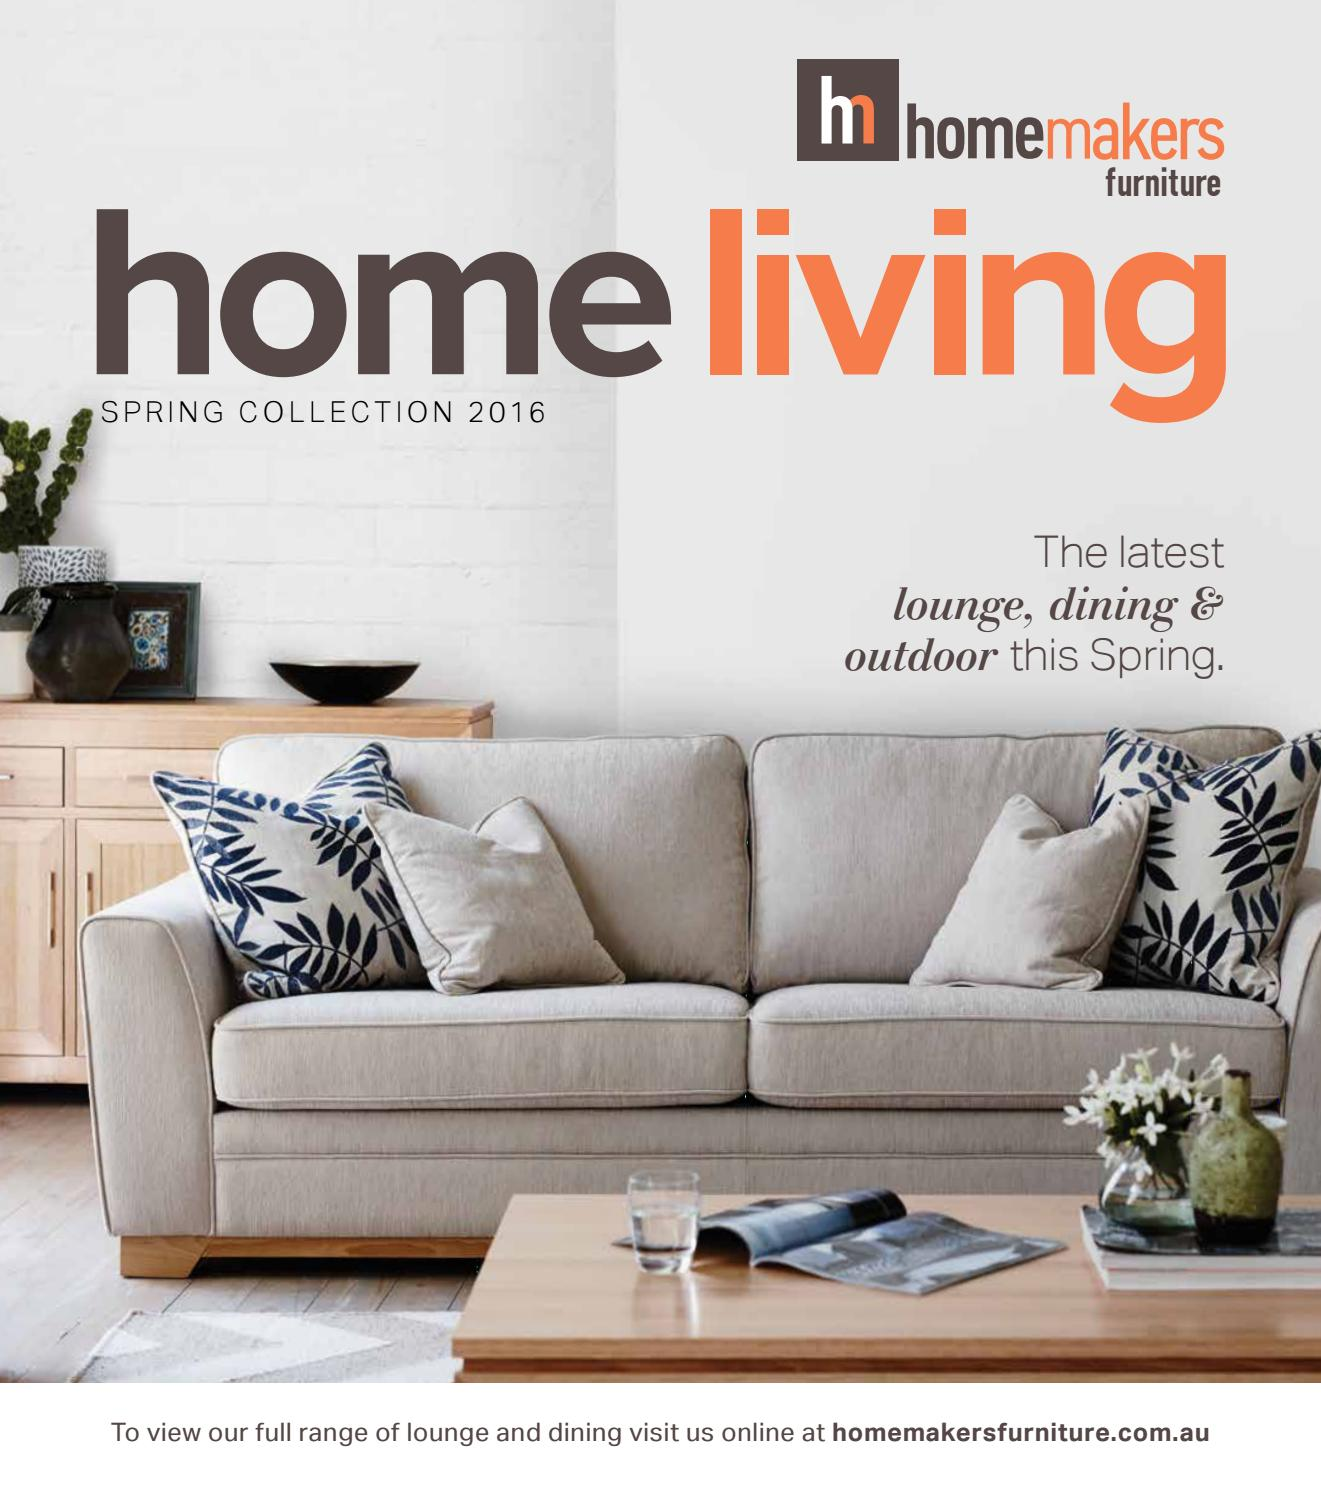 Homemakers Spring Home Living Catalogue (VIC) By